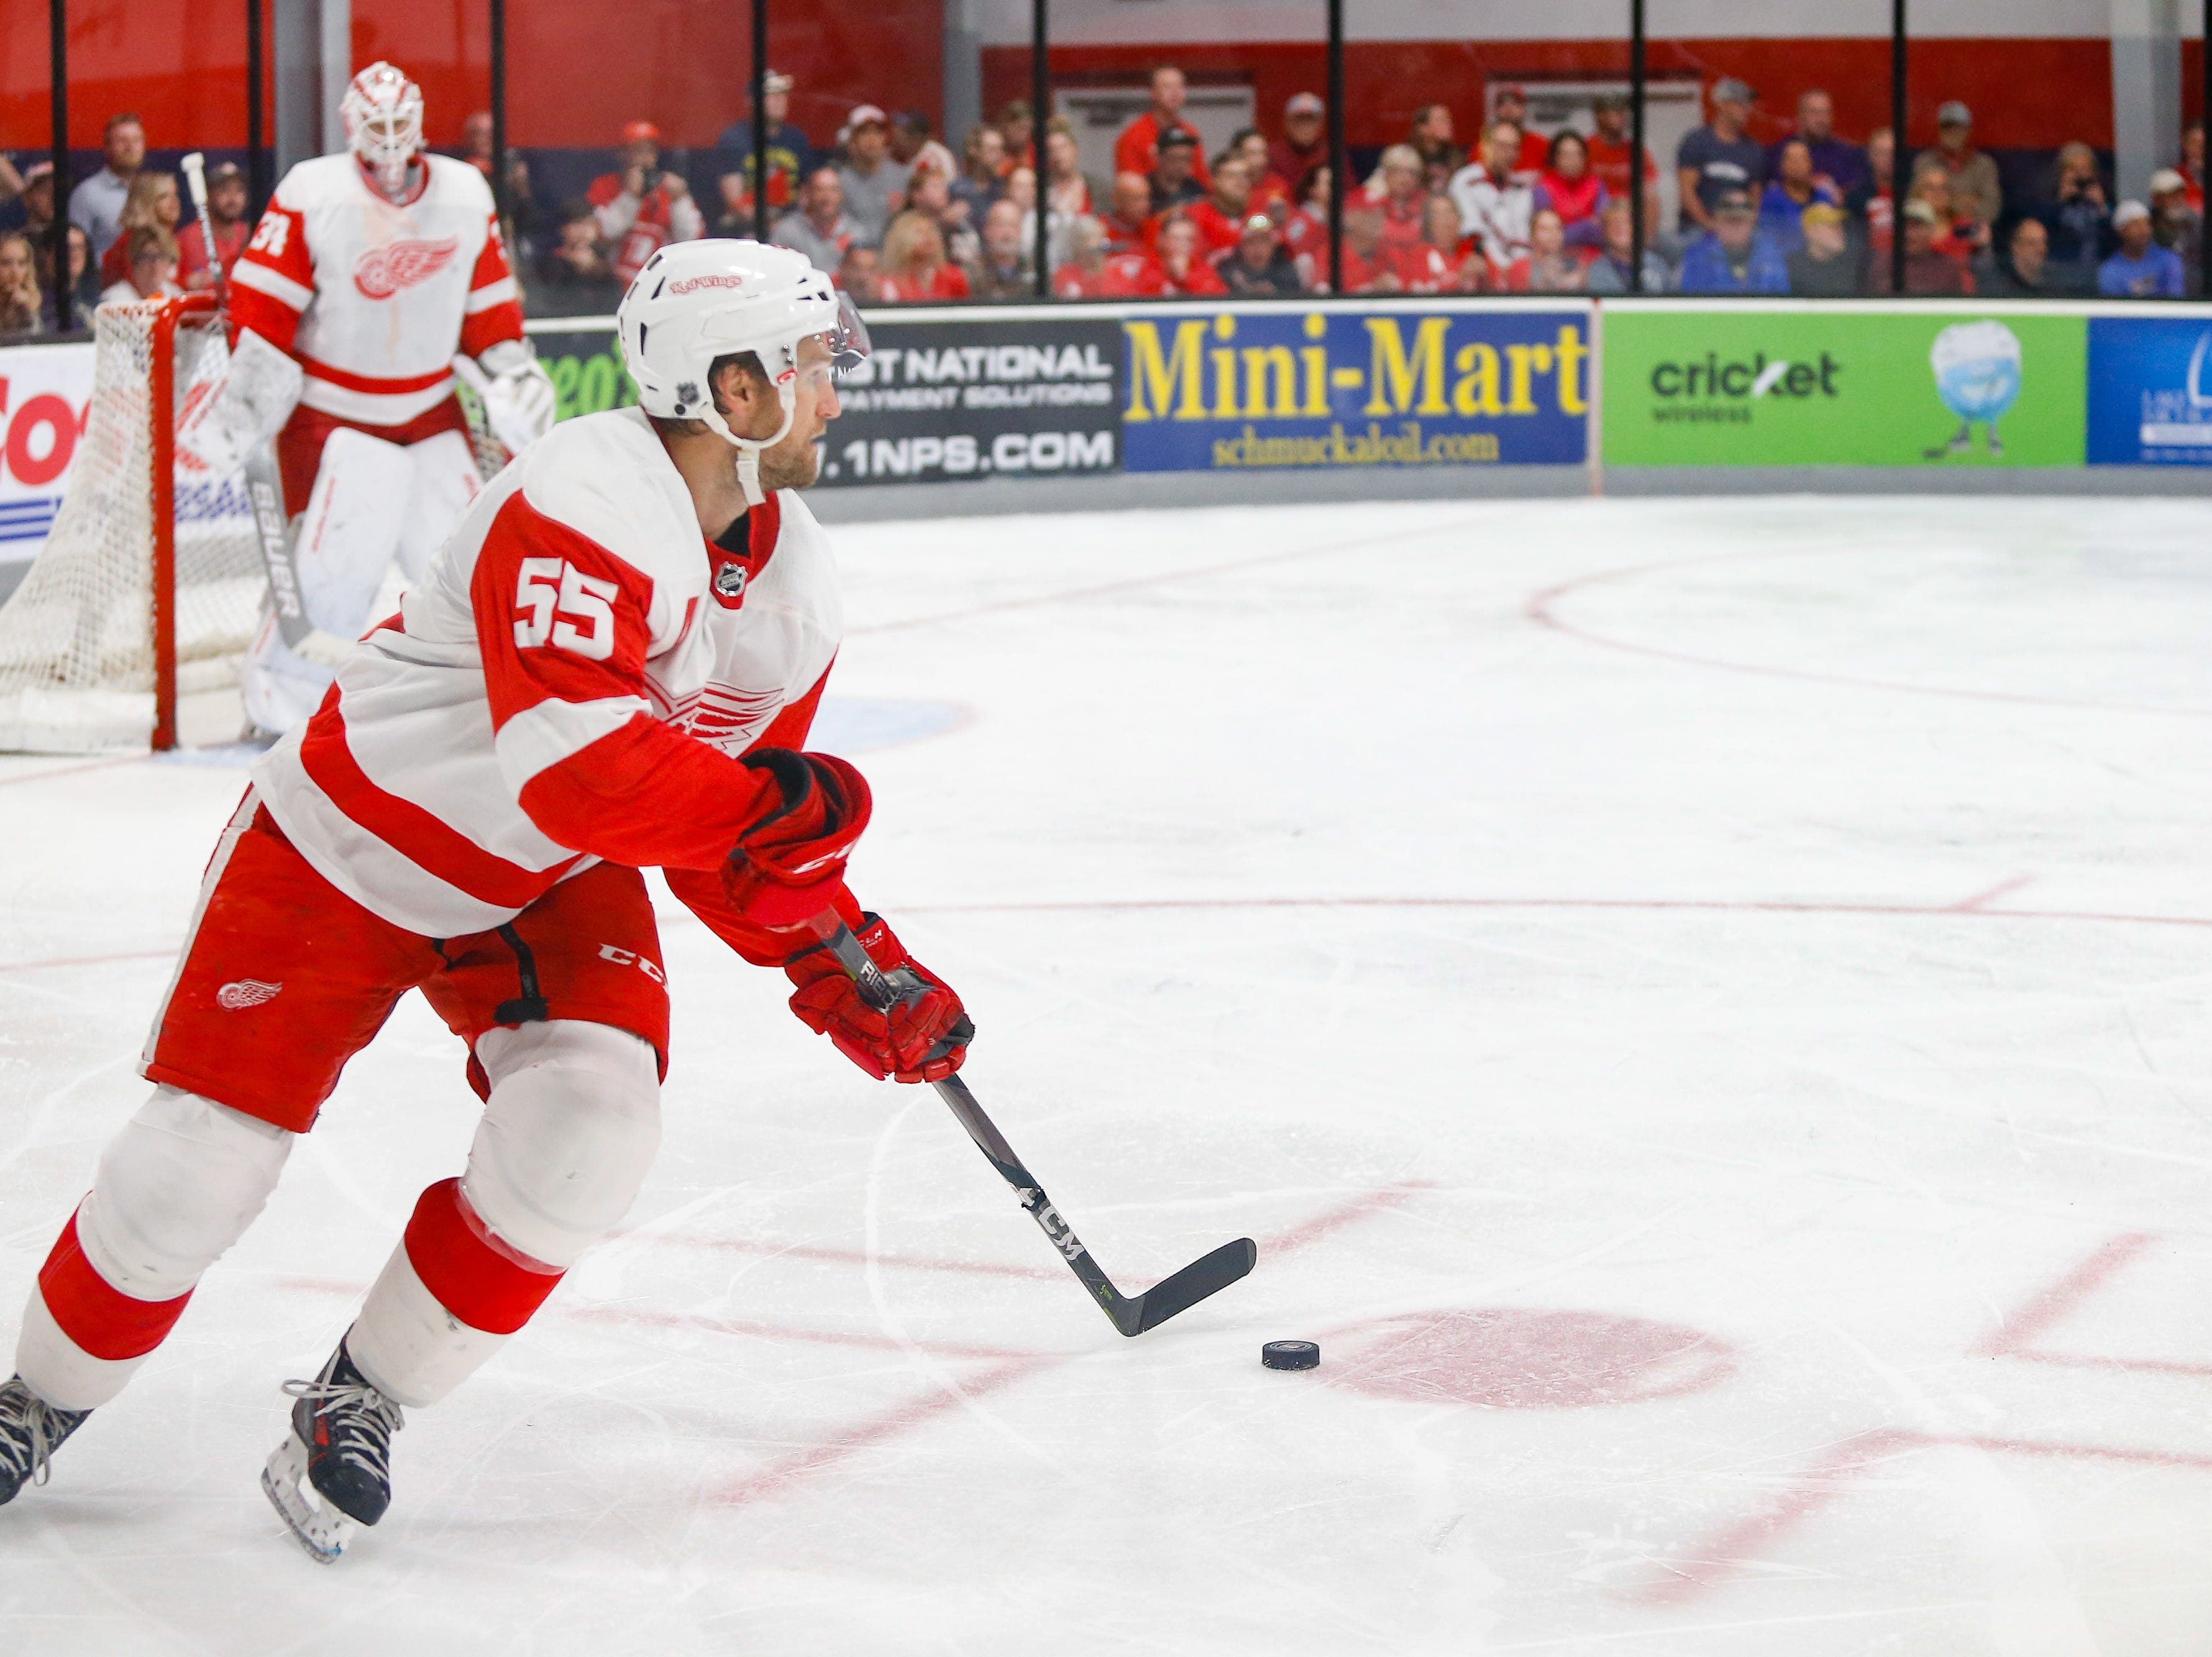 Niklas Kronwall turns and carries the puck out of the Team White end.